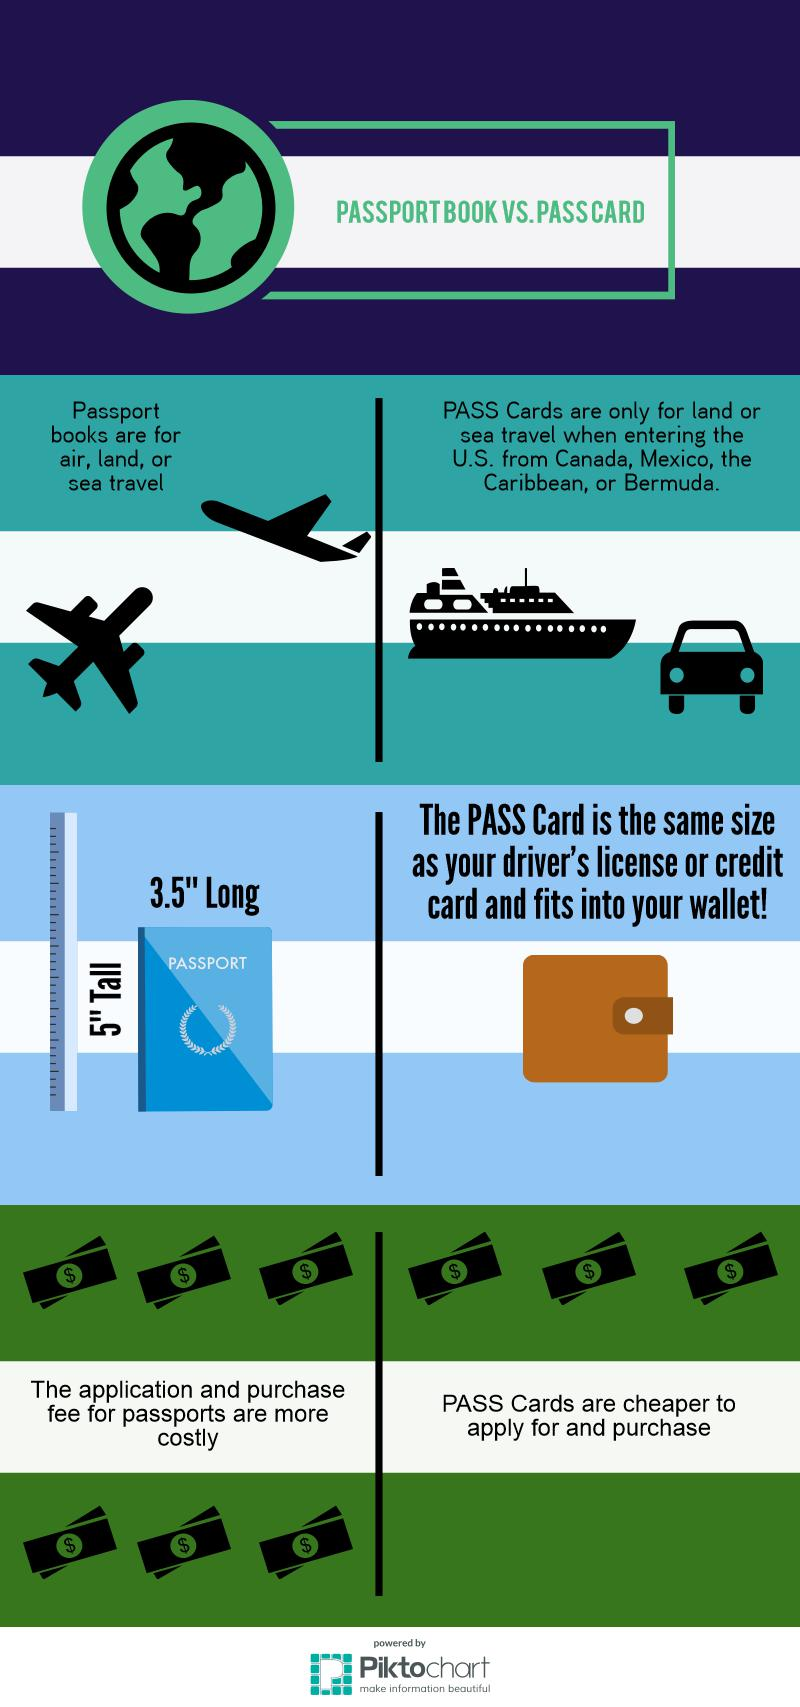 Passport vs PASS Card